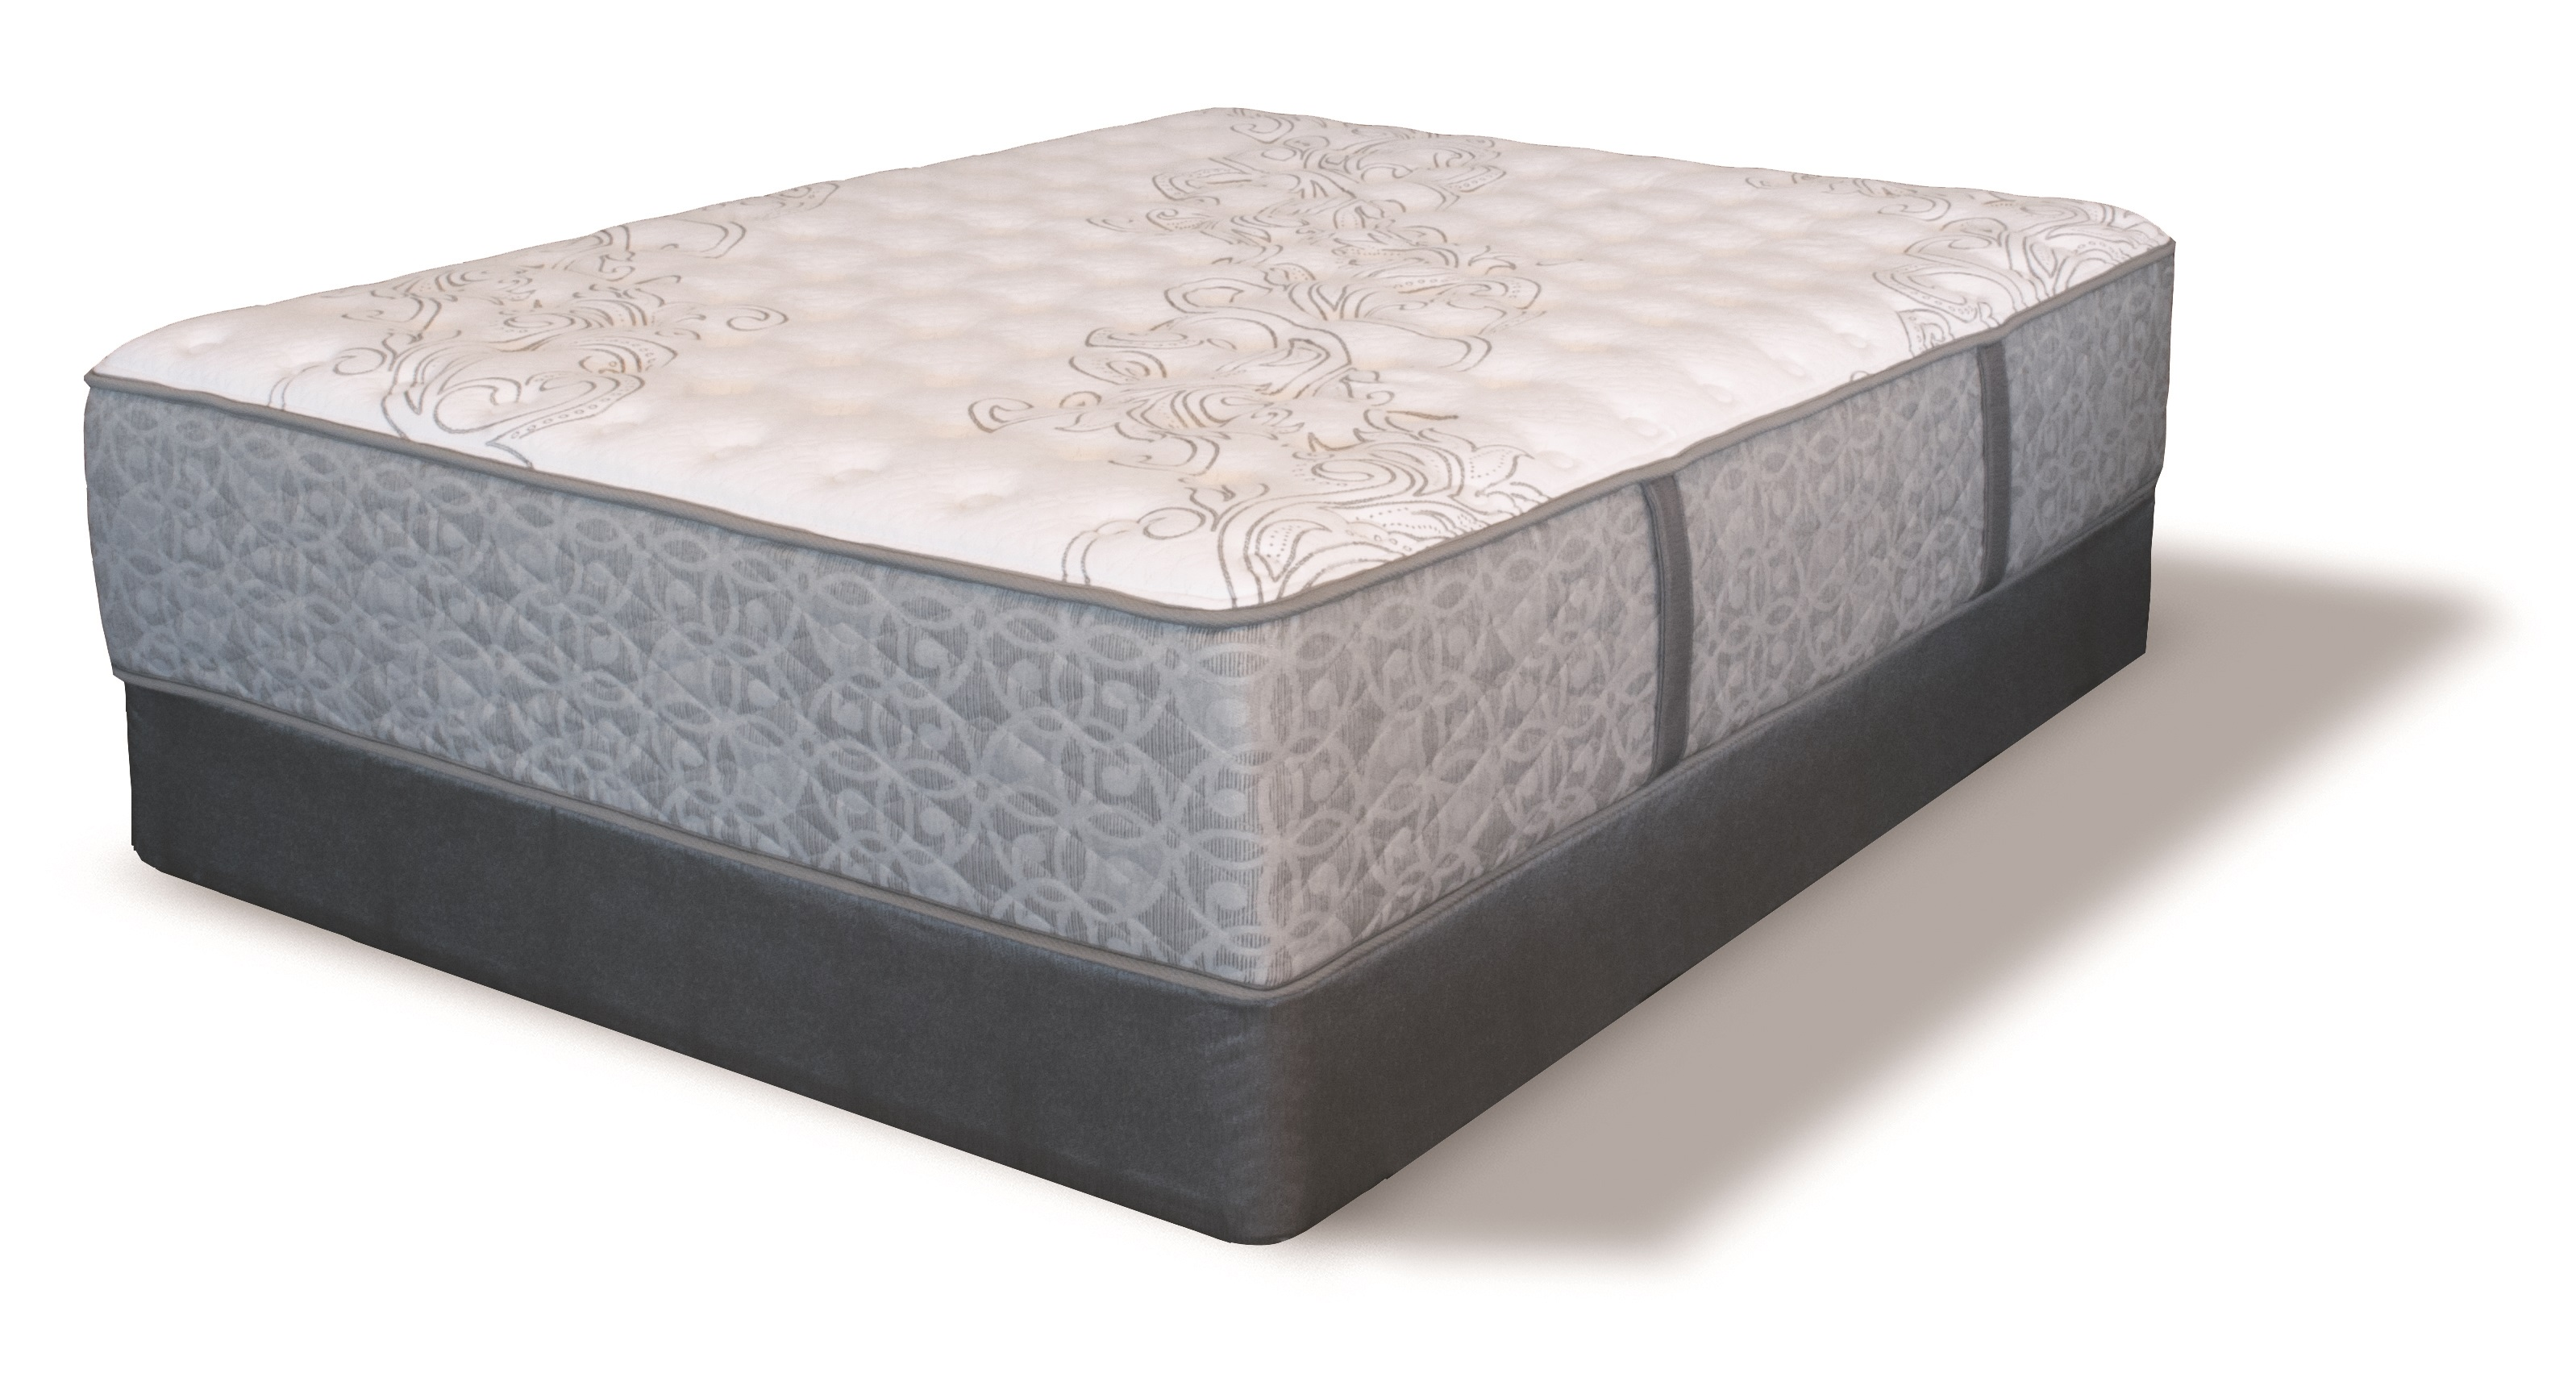 Serta Whispering Pines Firm Queen Mattress and Boxspring Closeouts in Pittsburgh